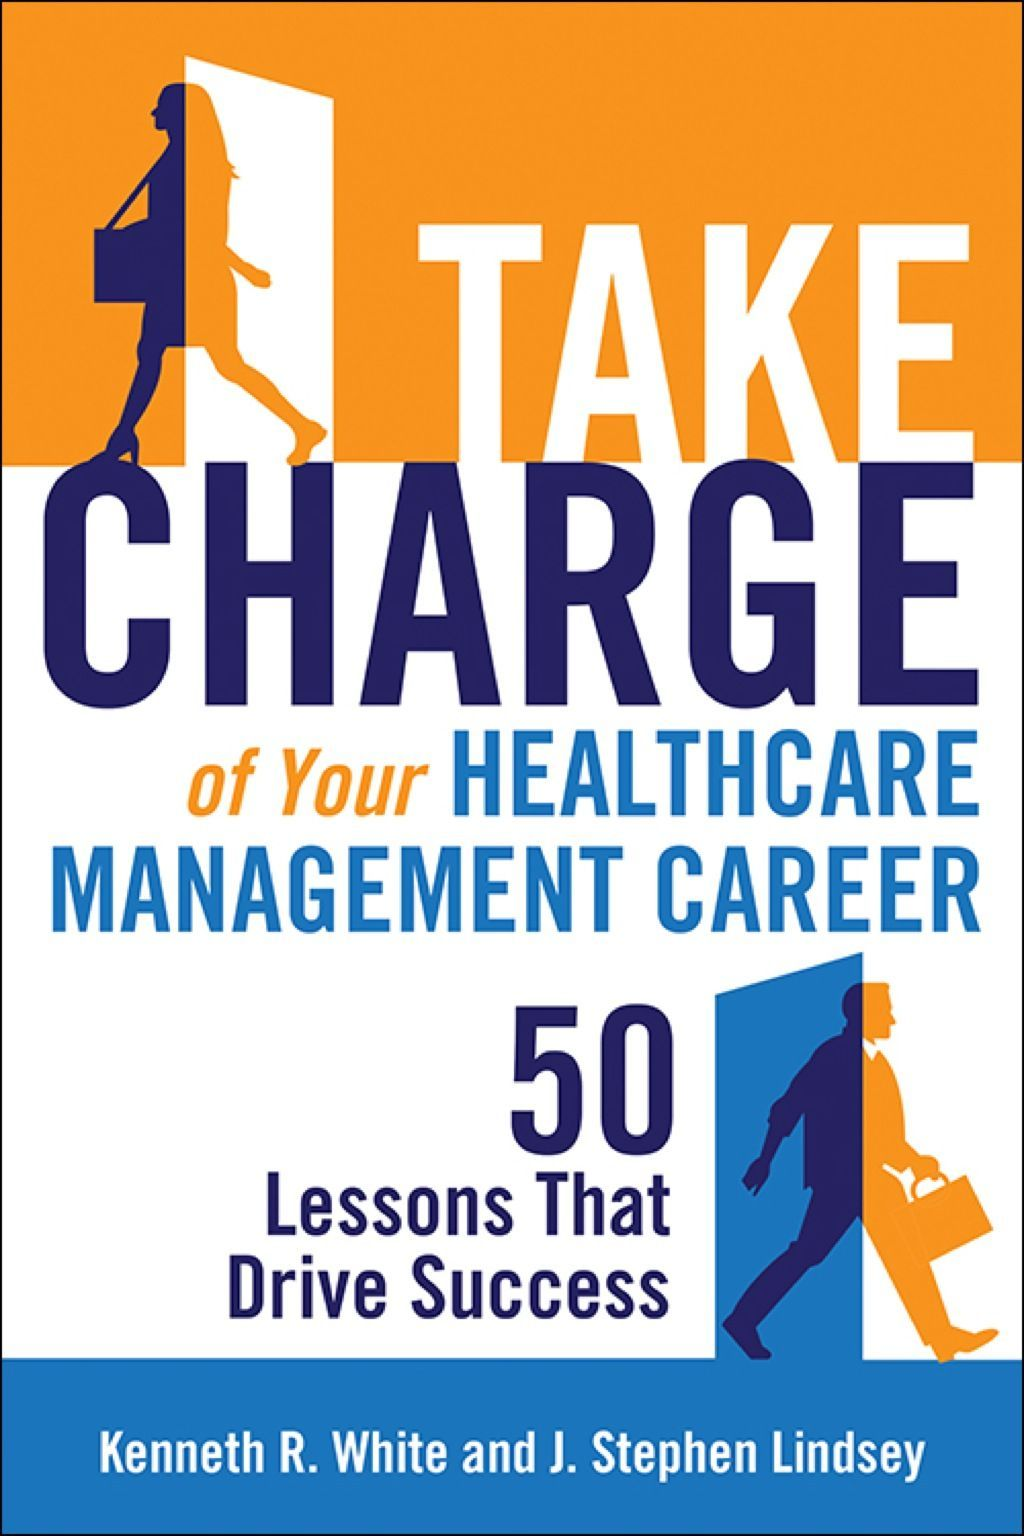 Take Charge of Your Healthcare Management Career 50